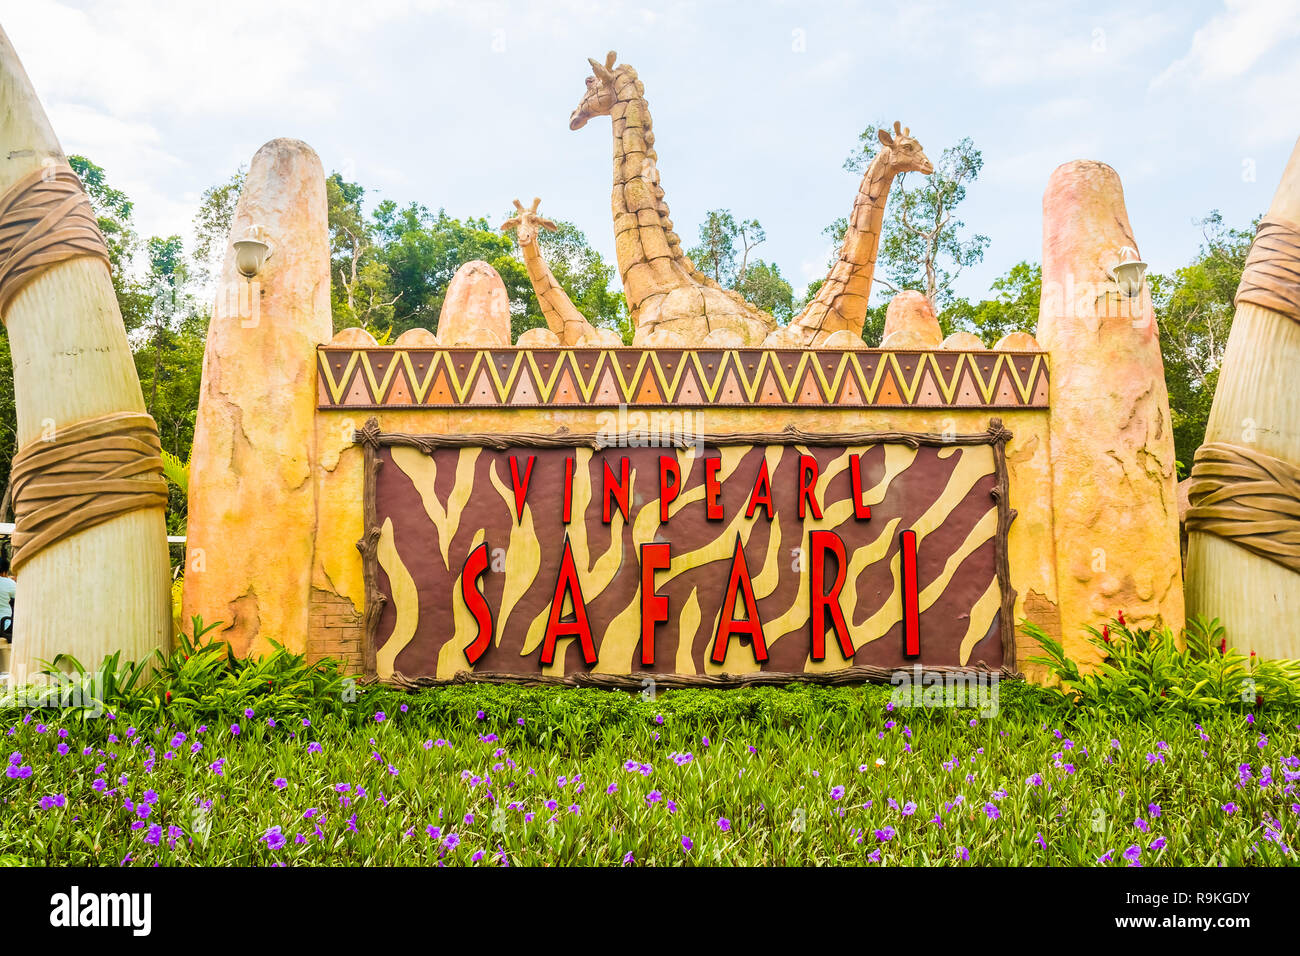 Largest zoological park in Vietnam - Vinpearl Safari Phu Quoc park with exotic flora and fauna, Phu Quoc in Vietnam - Stock Image